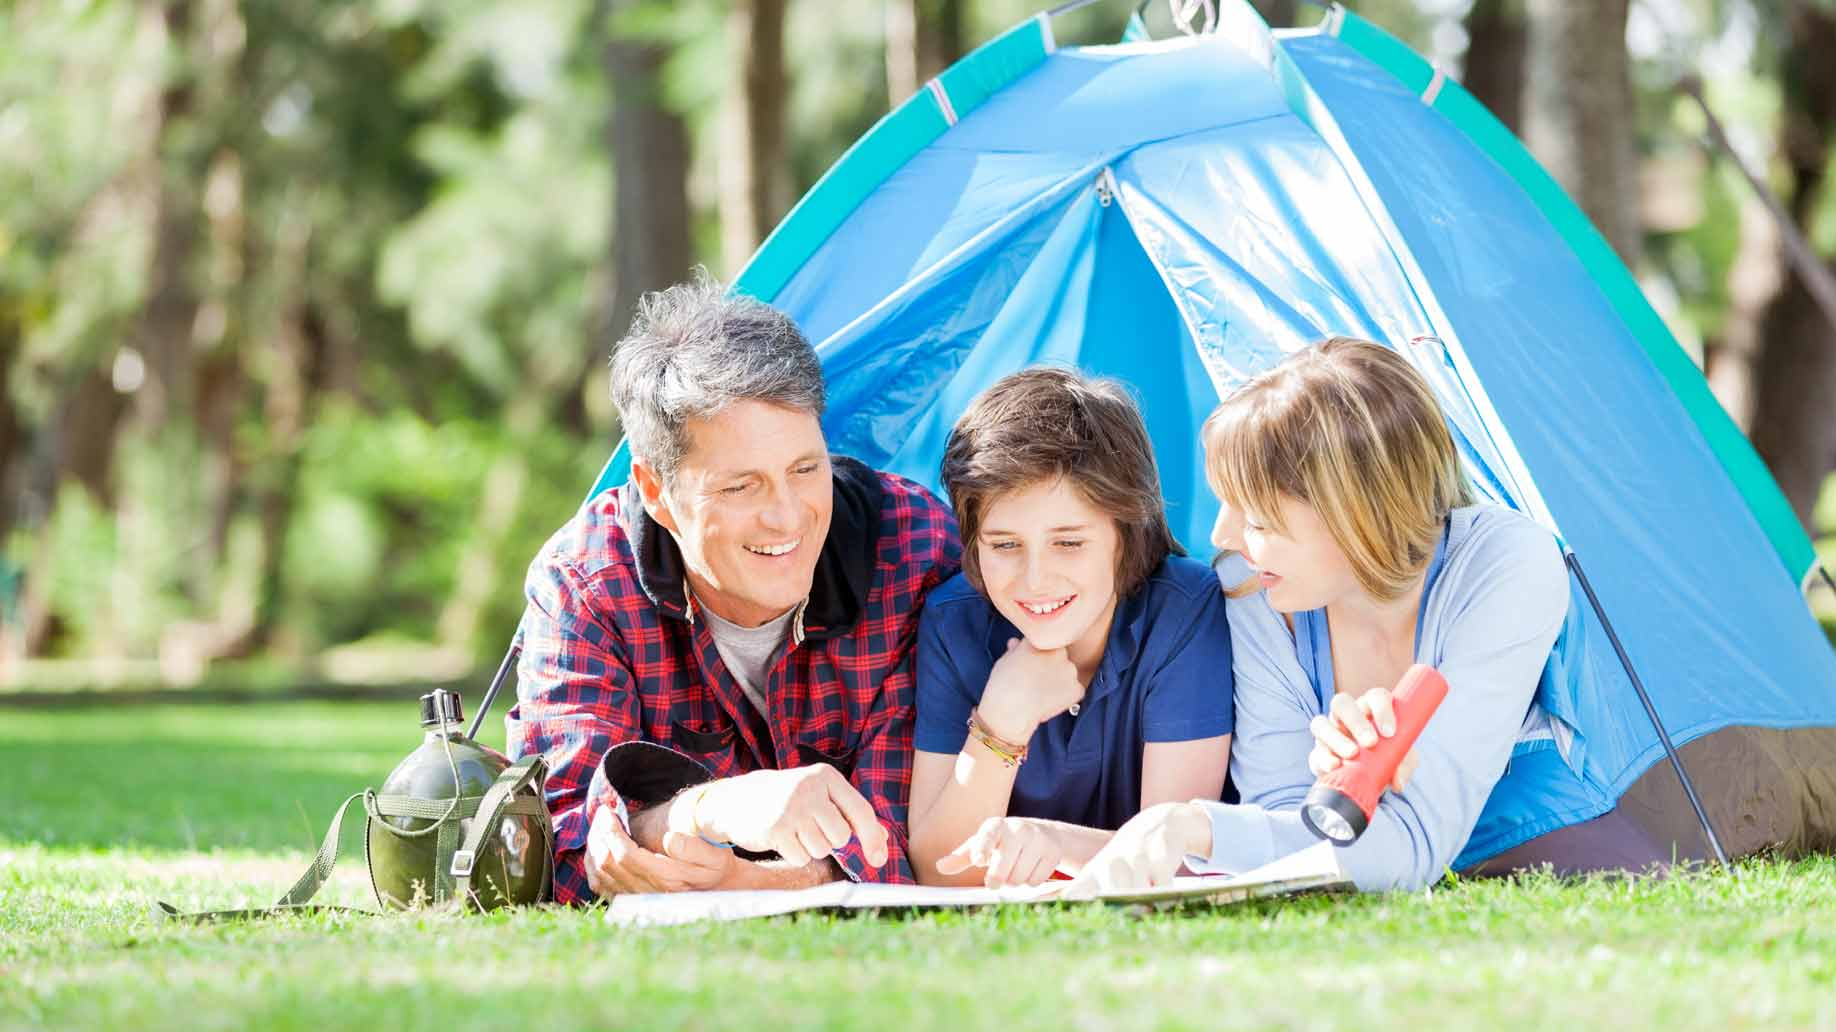 dad camping in the backyard with kids